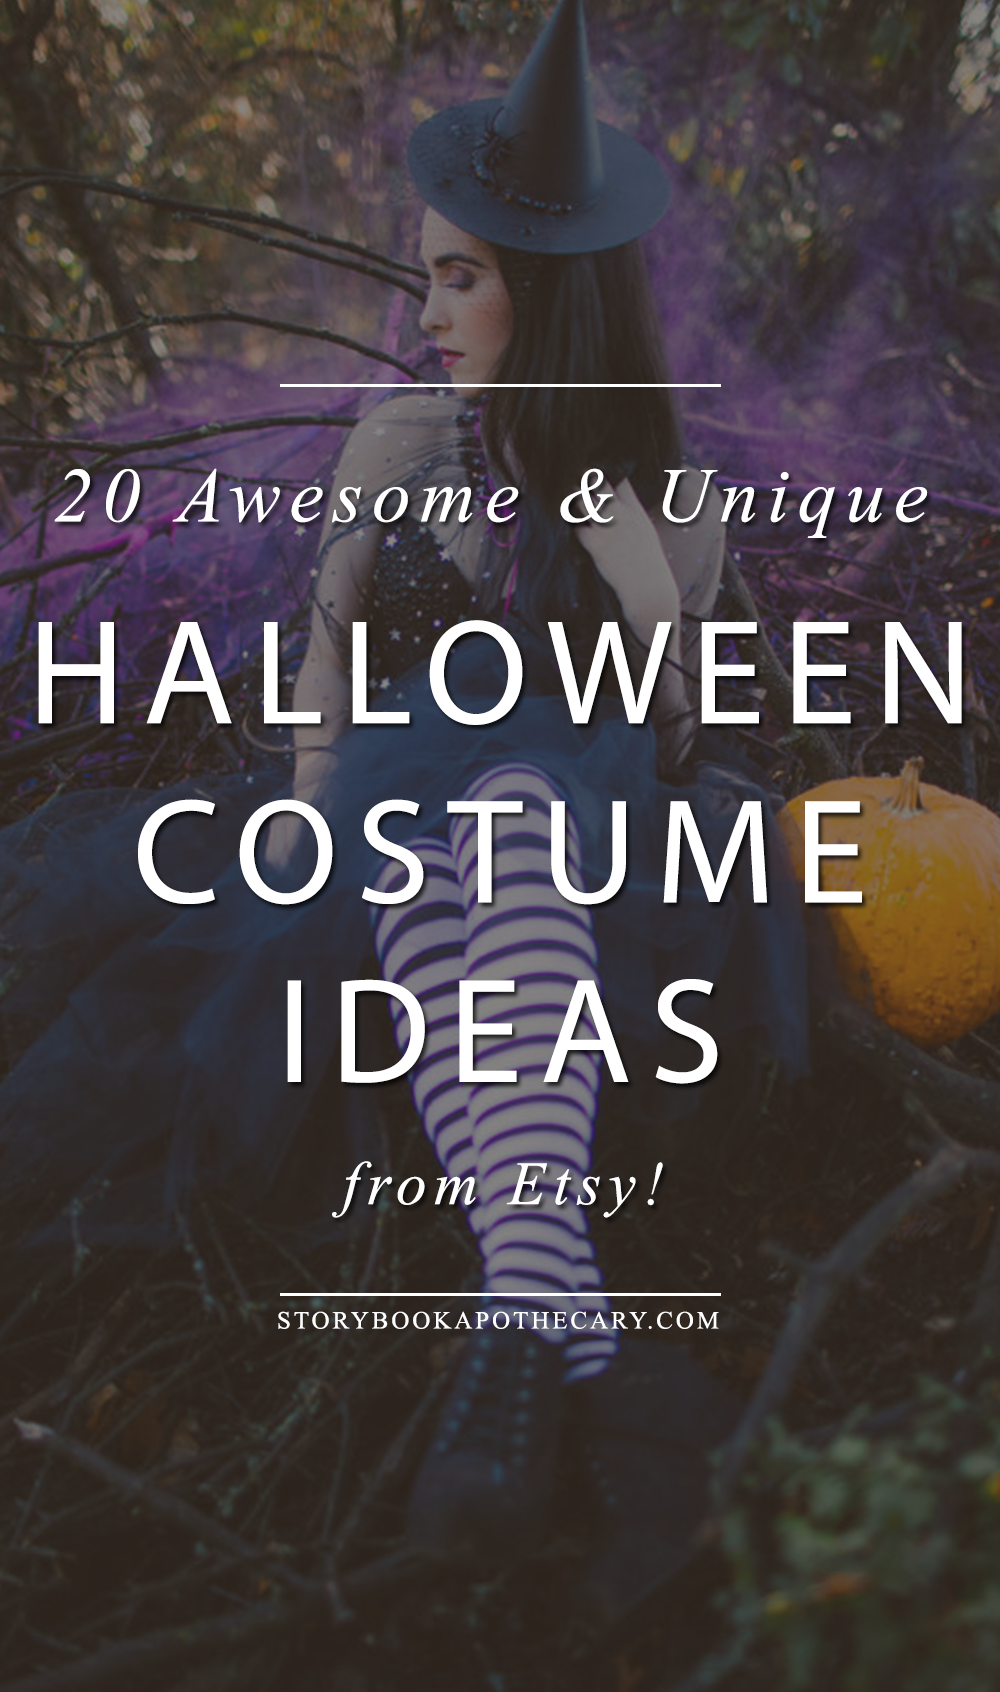 Halloween Costume Ideas from Etsy